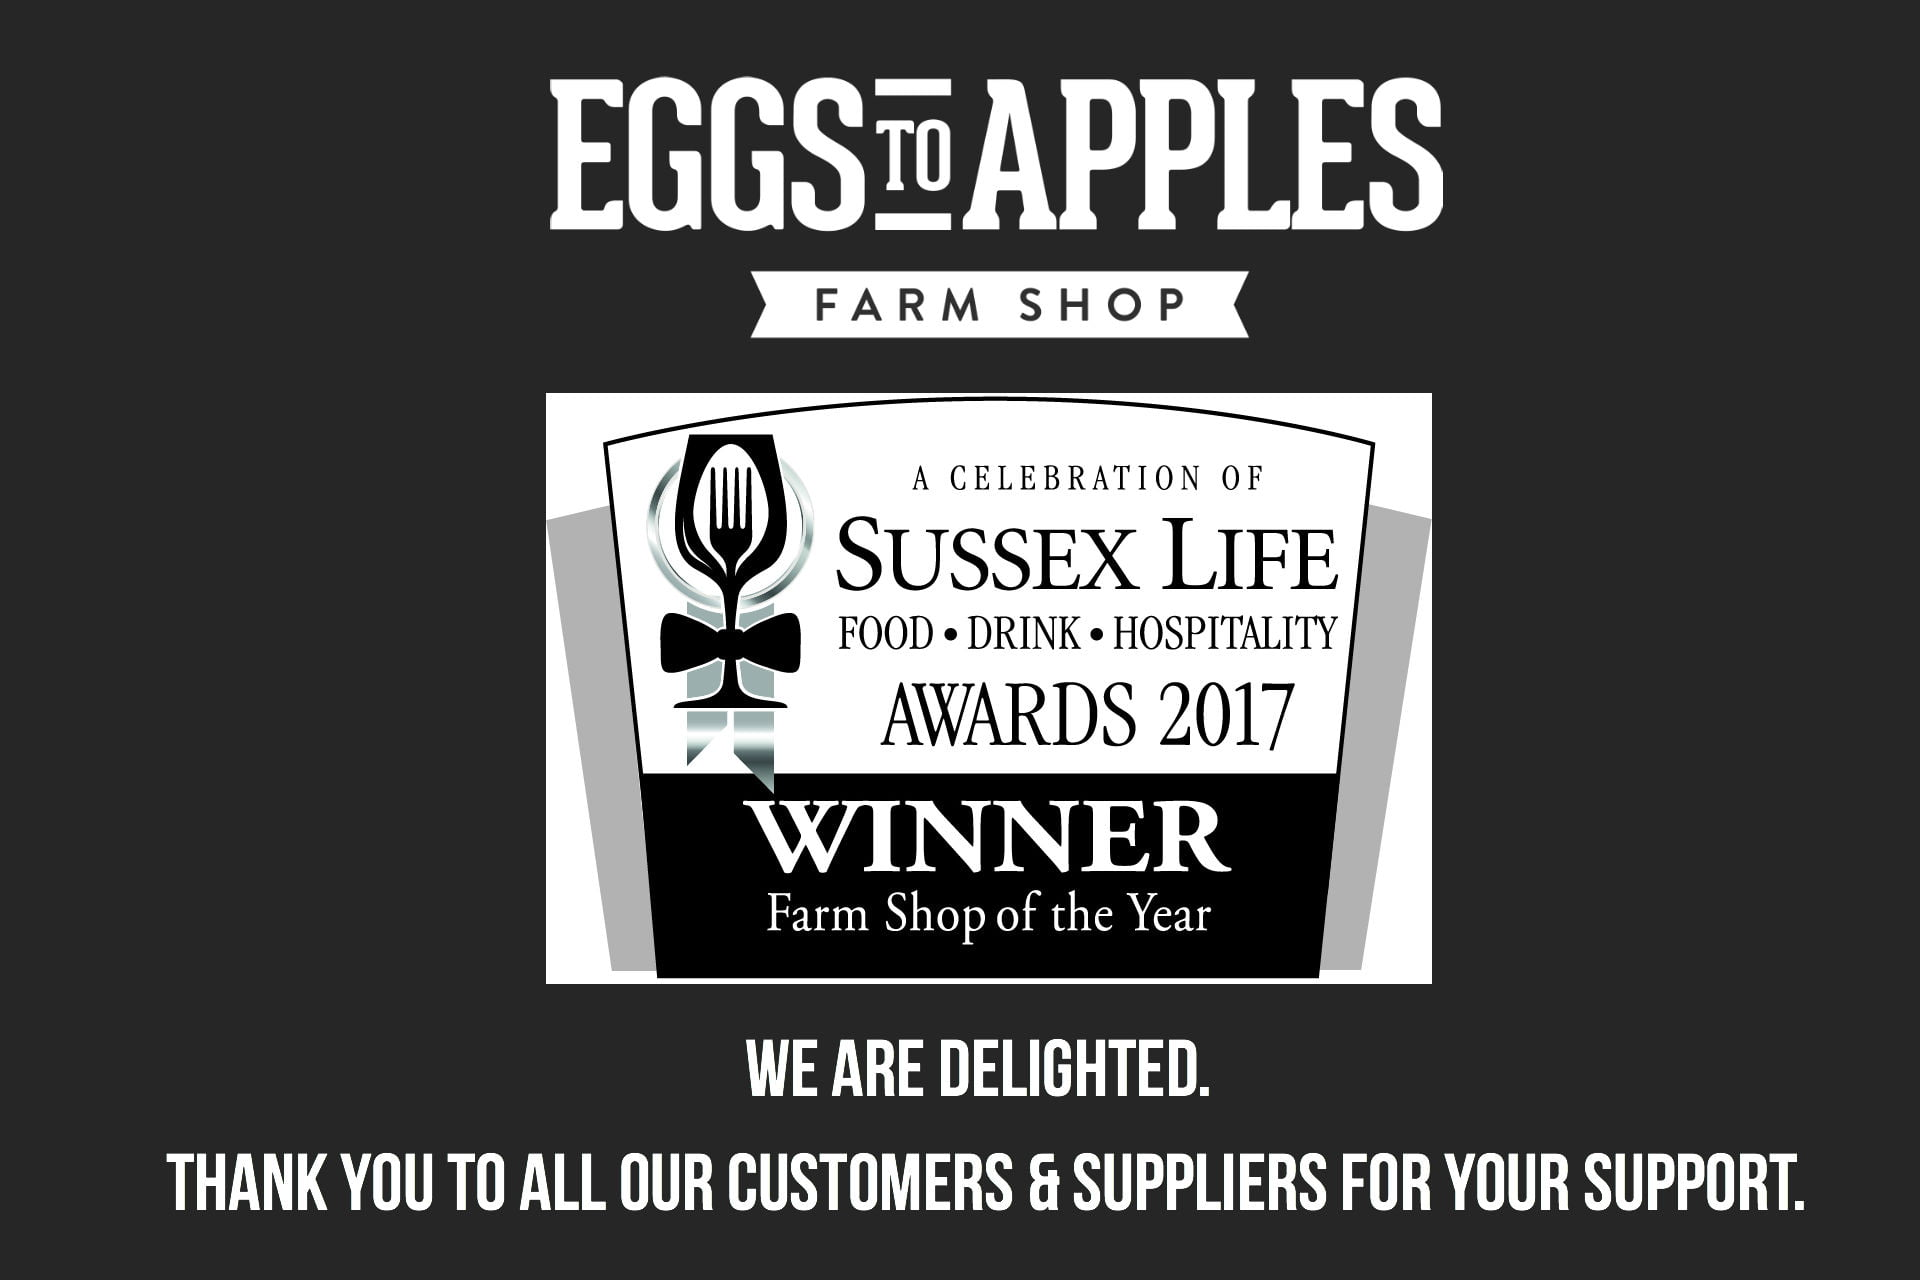 Sussex Farm Shop of the Year 2017